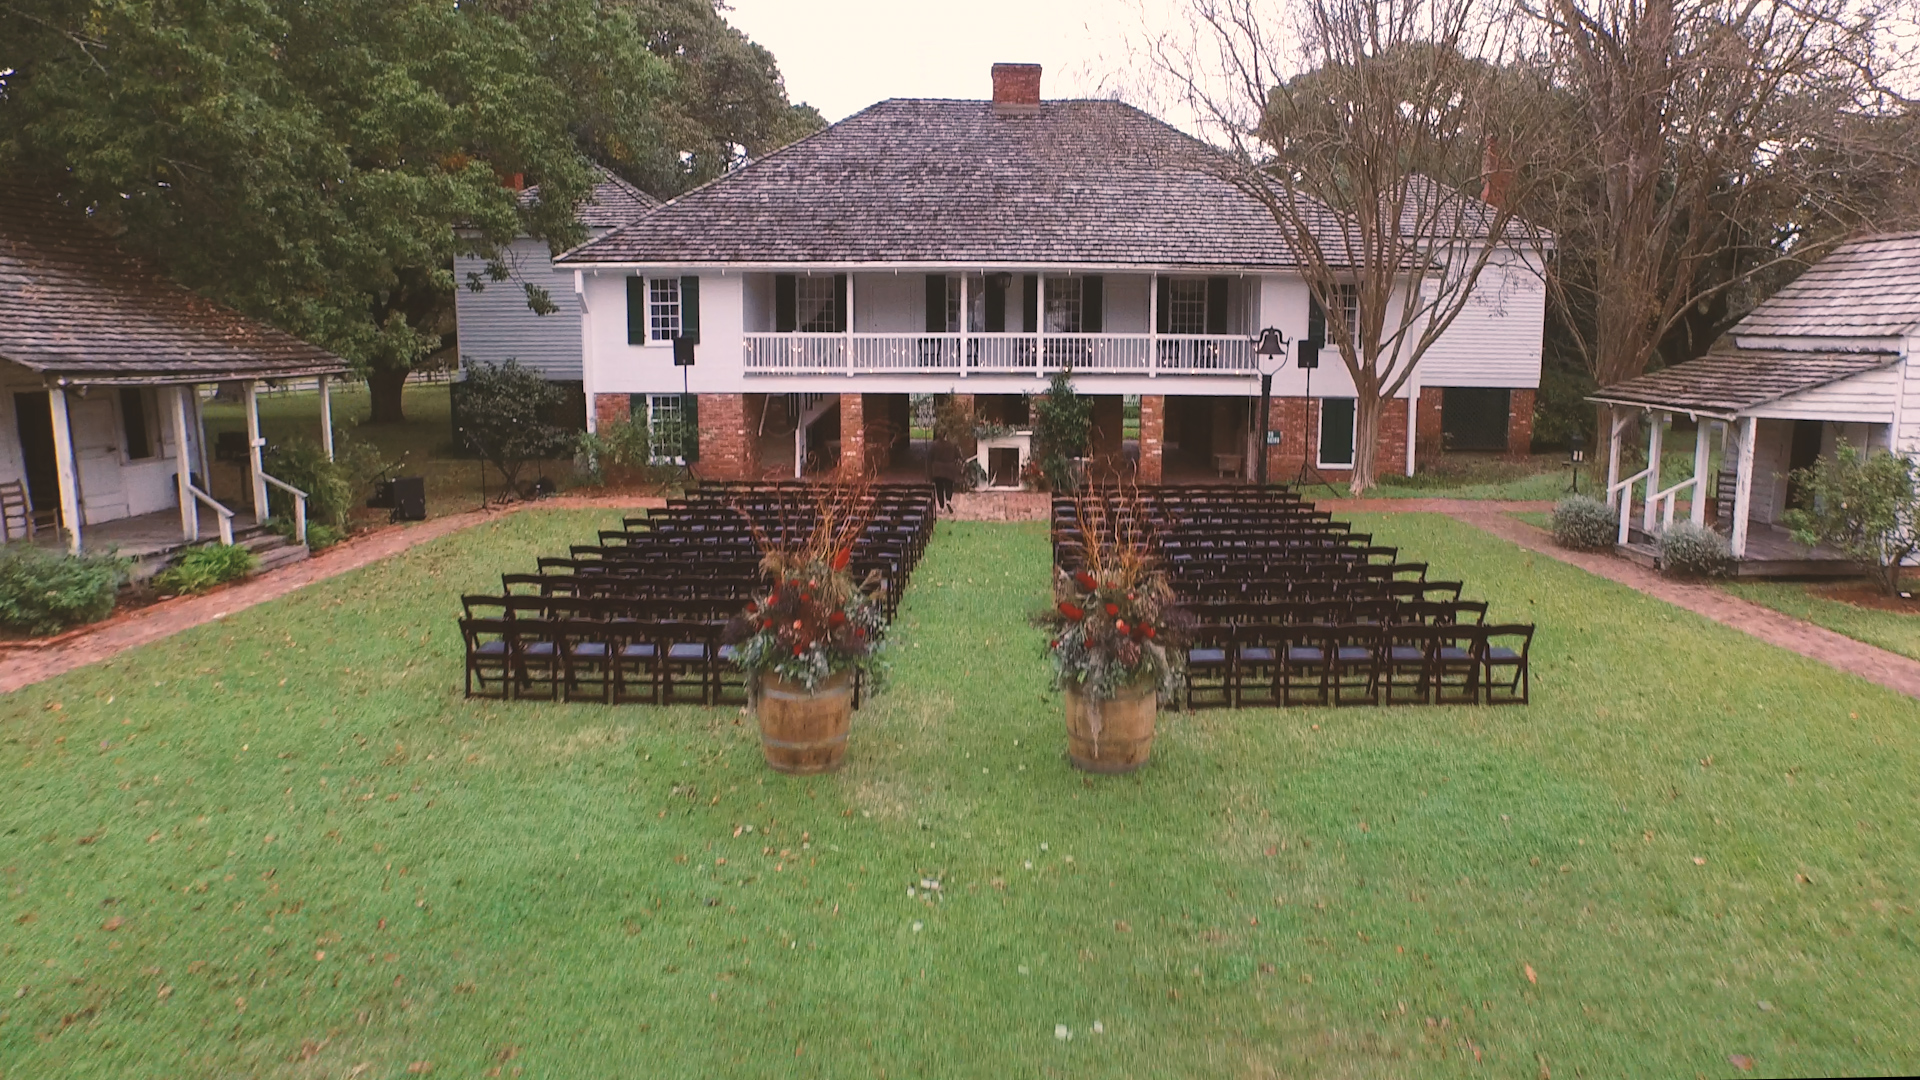 The ceremony setting was perfect for their intimate, emotional vows.